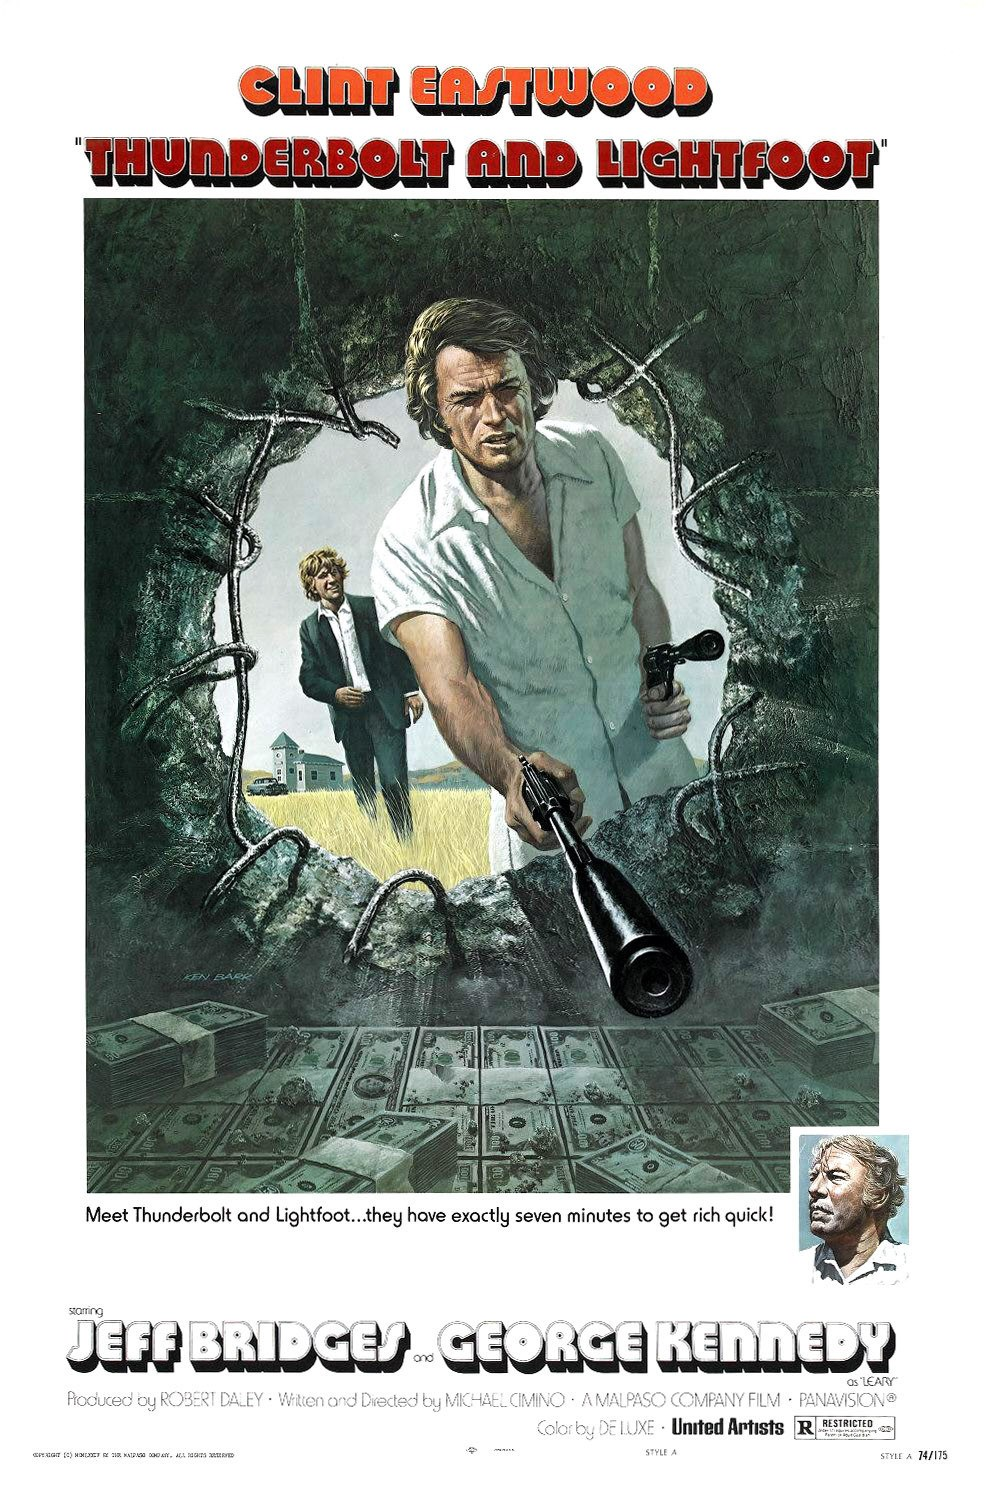 thunderbolt dating login #tags: thunderbolt and lightfoot 123movies thunderbolt and lightfoot 9moviesto thunderbolt and lightfoot thunderbolt and lightfoot fmovies thunderbolt and lightfoot download thunderbolt and.